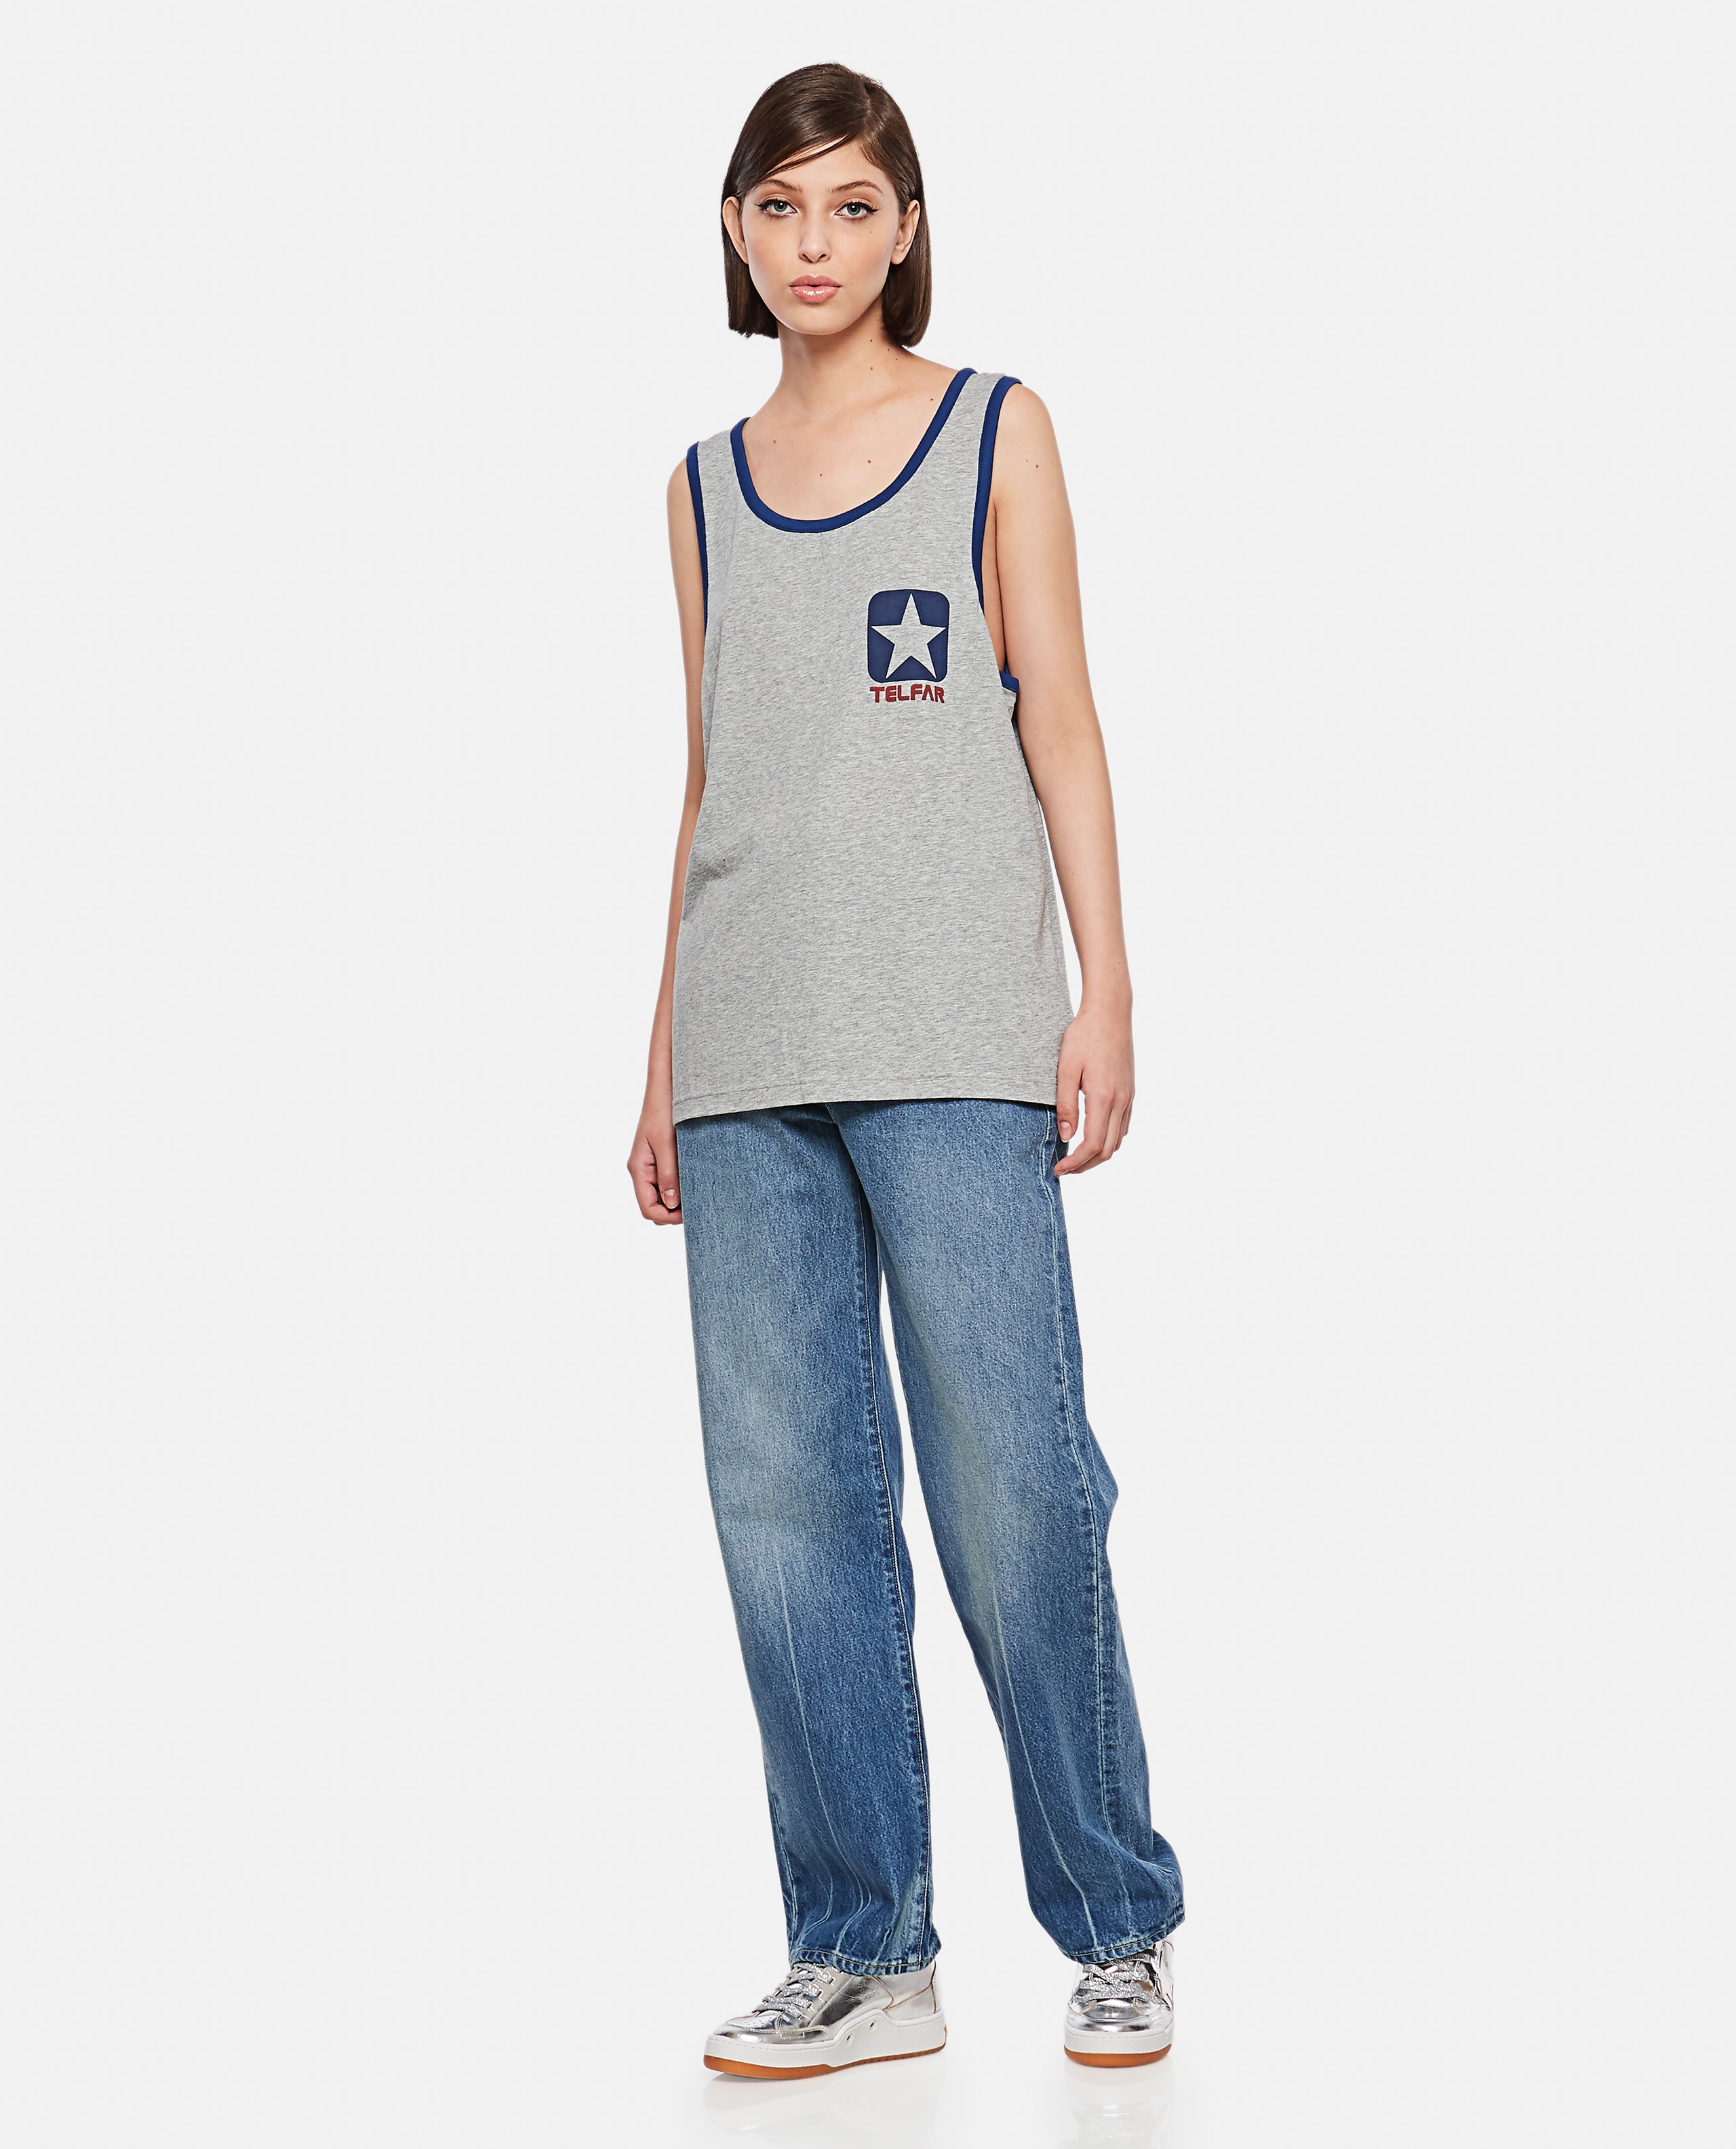 LEVI'S® MADE & CRAFTED® THE COLUMN JEANS Women Levi Strauss & Co. 000352890051347 2